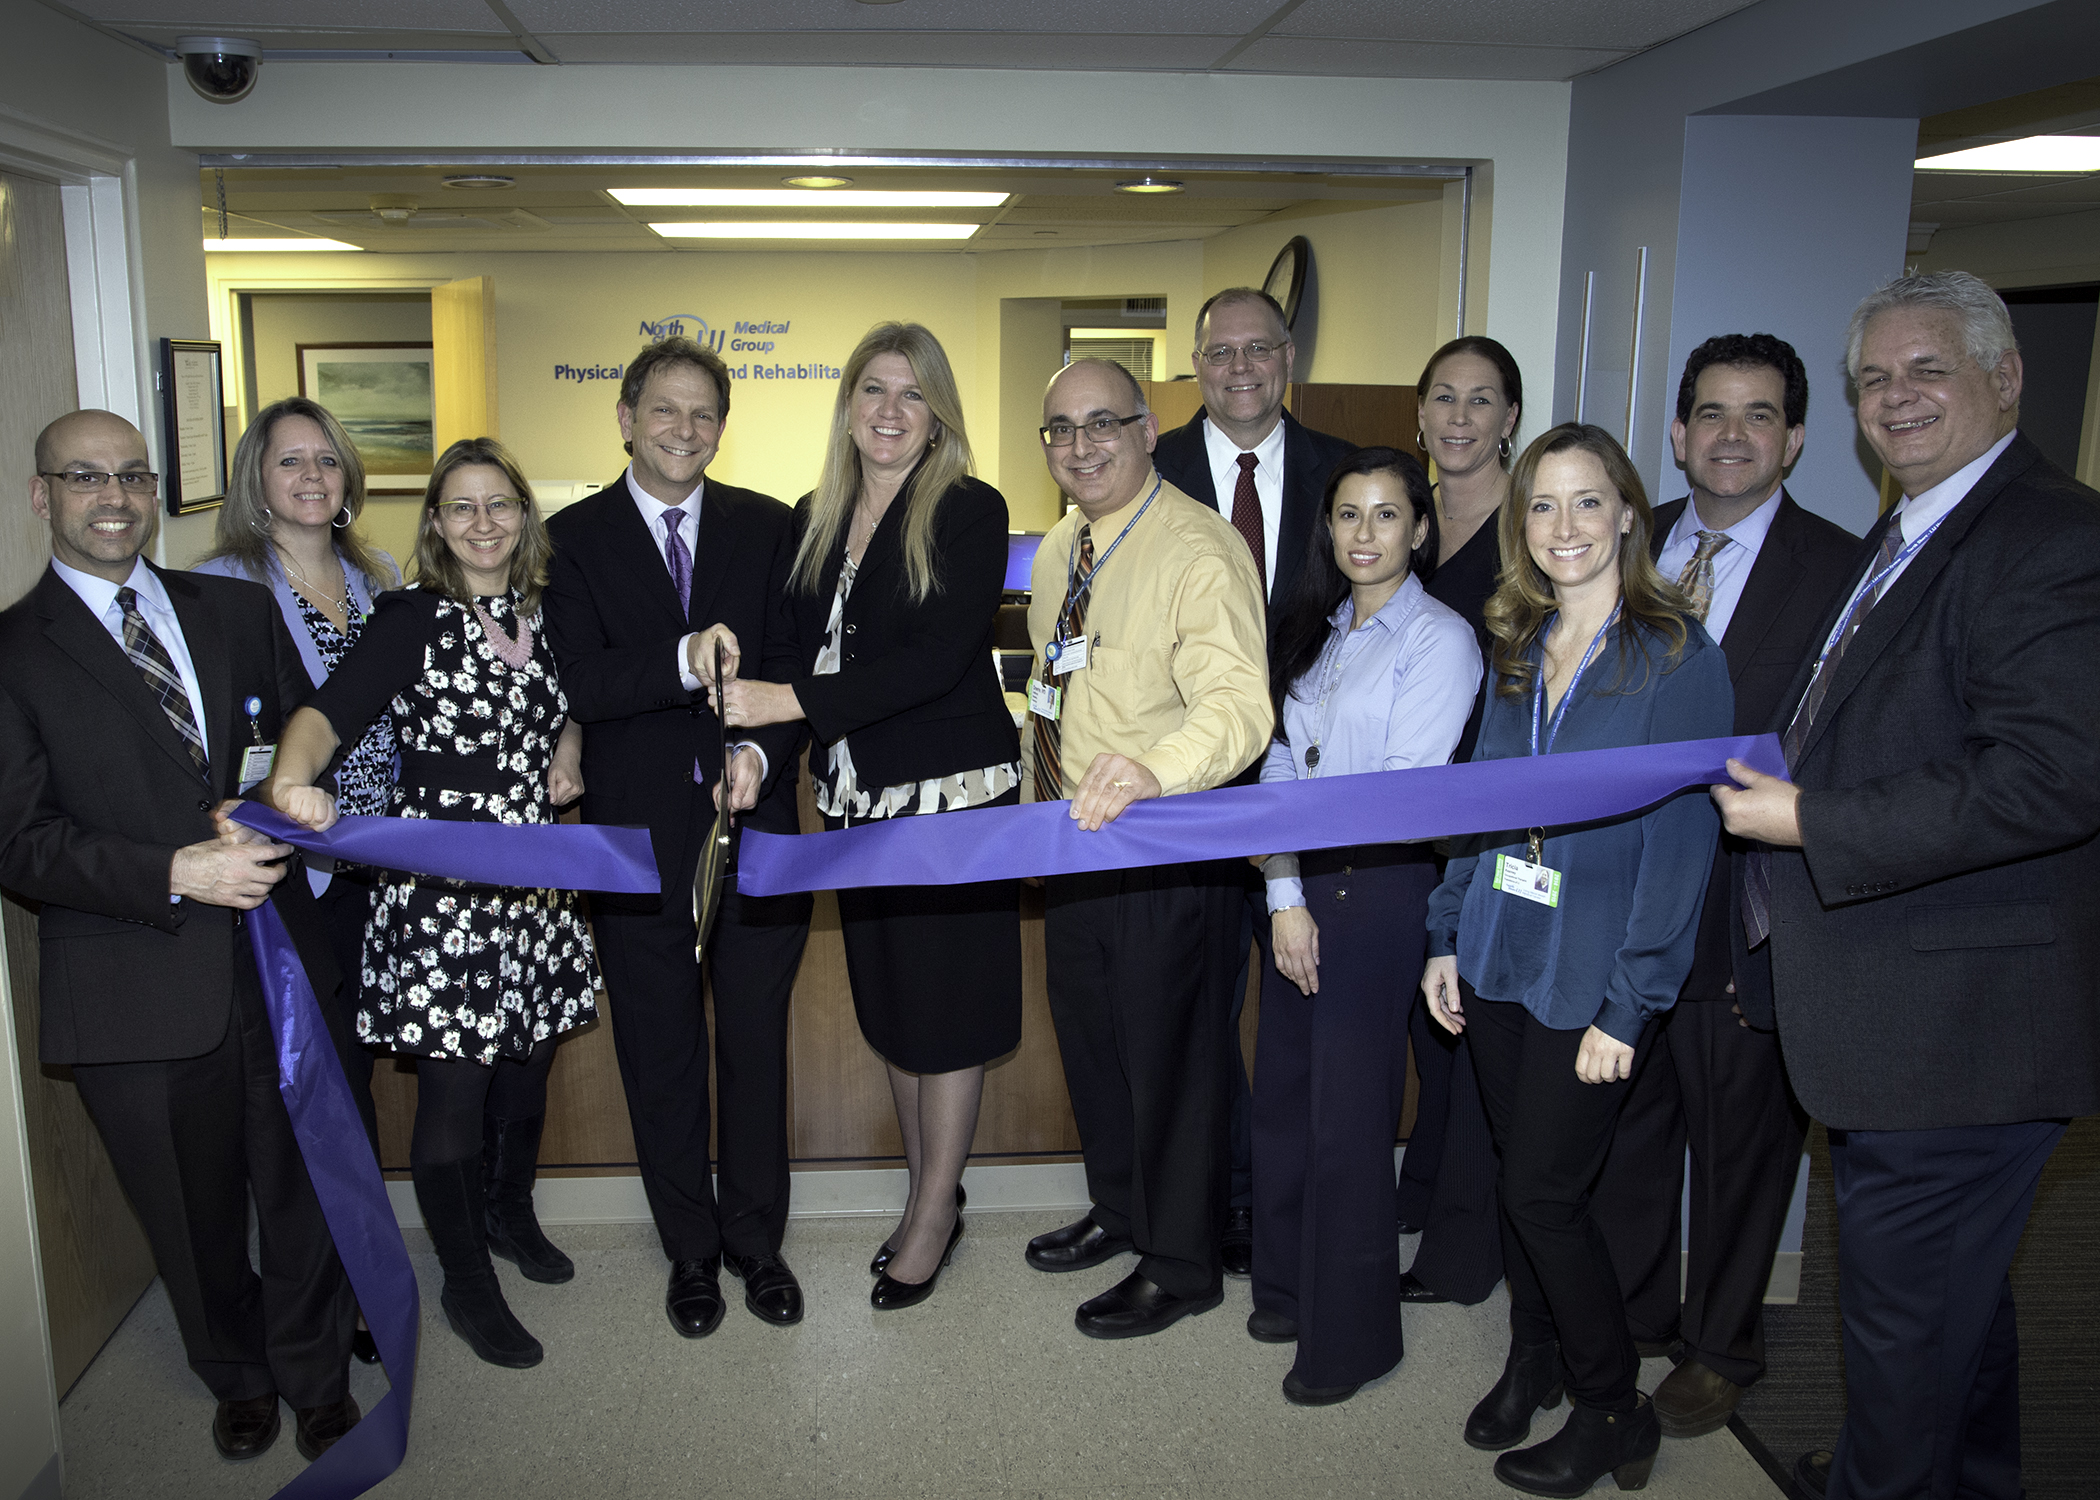 Members of the North Shore-LIJ Health System physical medicine and rehabilitation team cut the ribbon for their new Manhasset rehabilitation center.